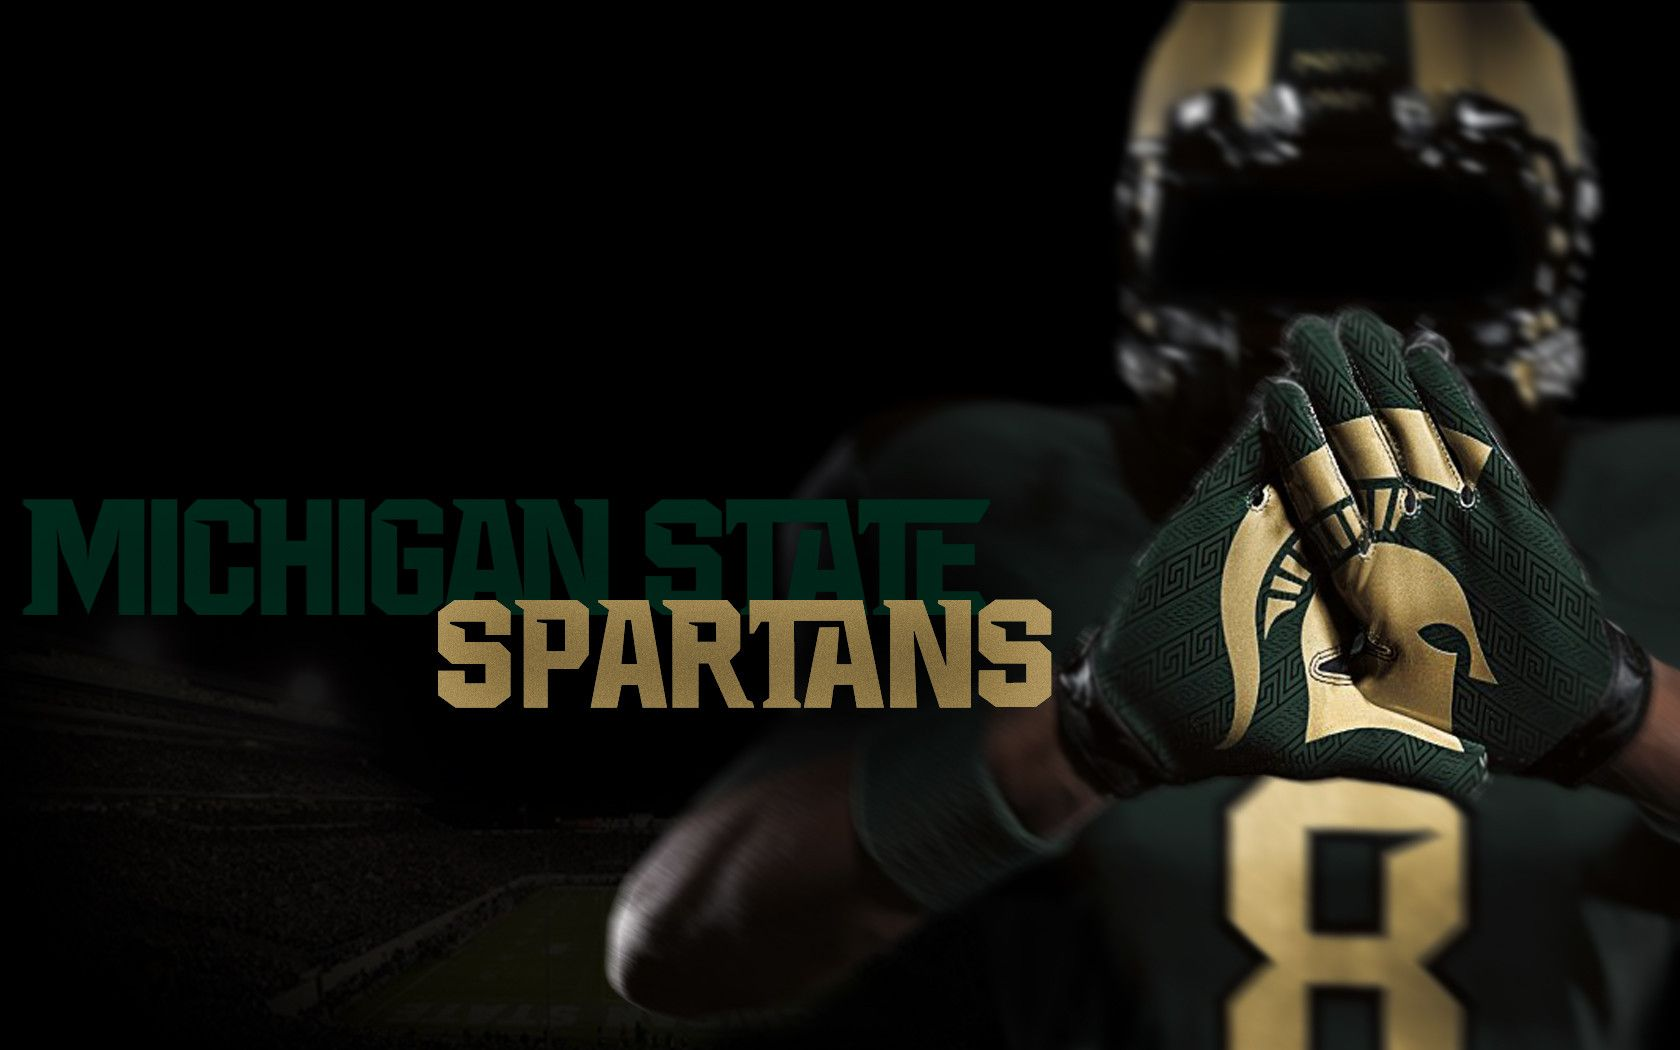 Download michigan state football wallpaper gallery - Michigan state football backgrounds ...